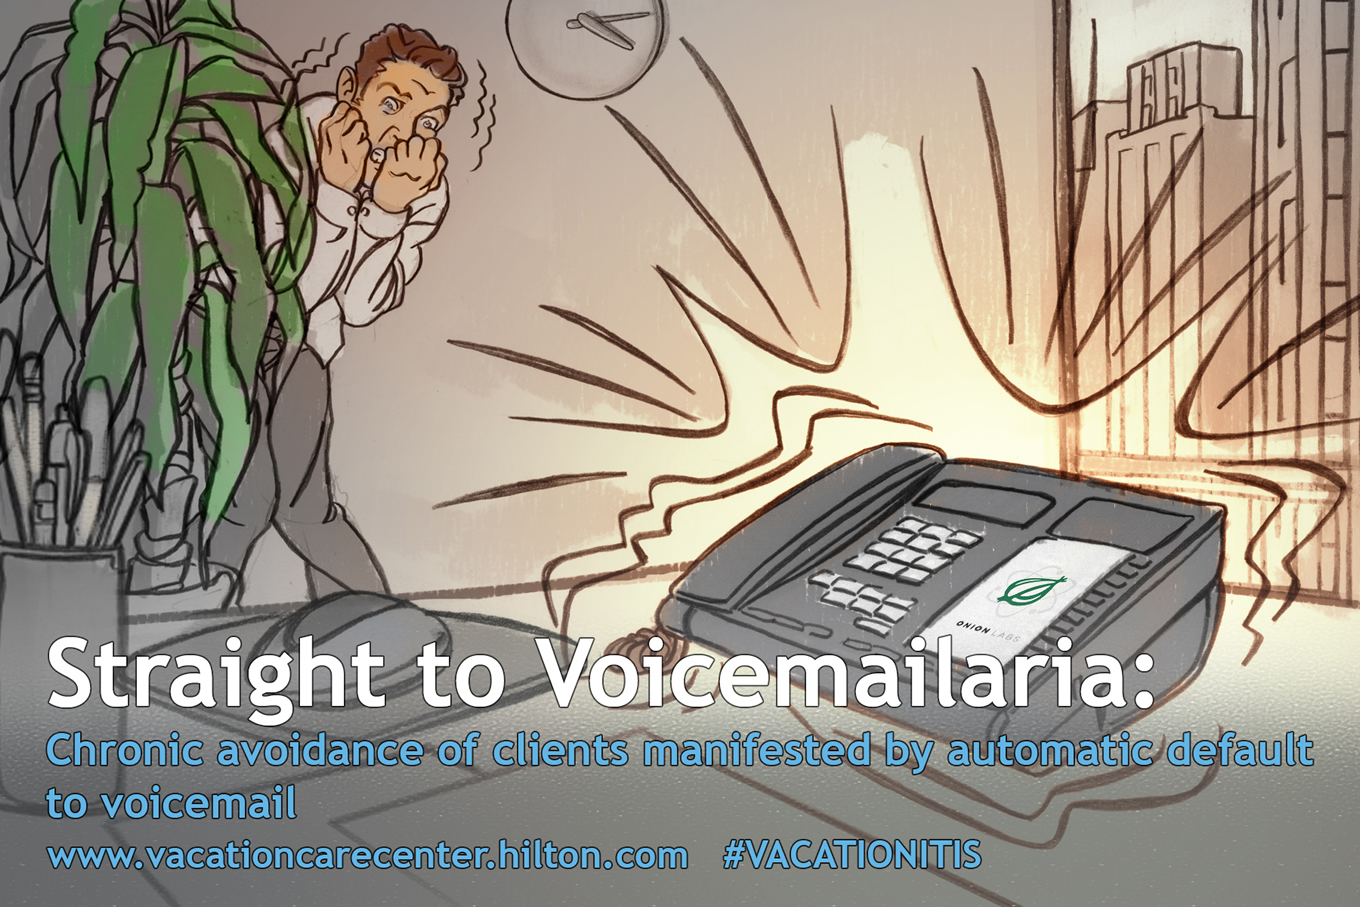 Voicemailaria, Hilton Urgent Vacation Care Centre Marketing Campaign